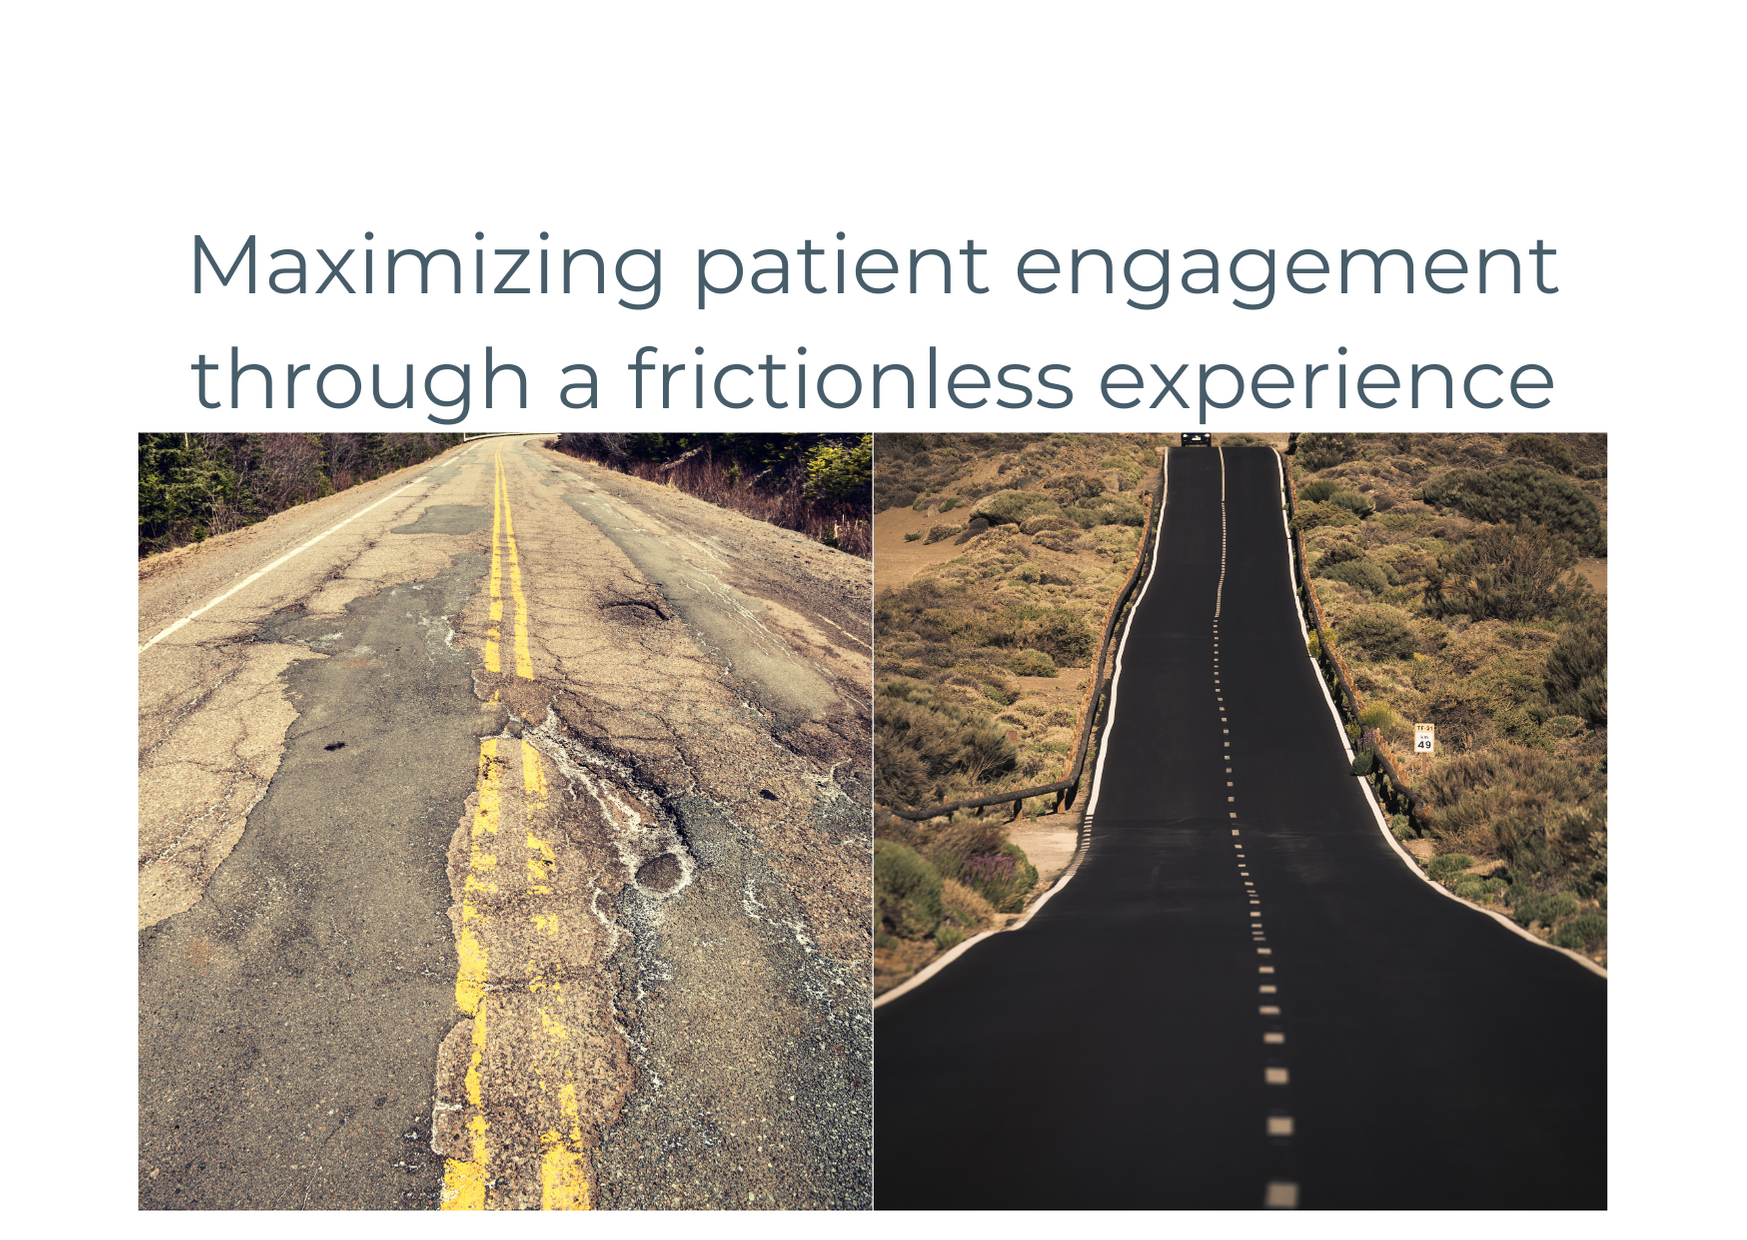 Maximizing patient engagement through a frictionless experience